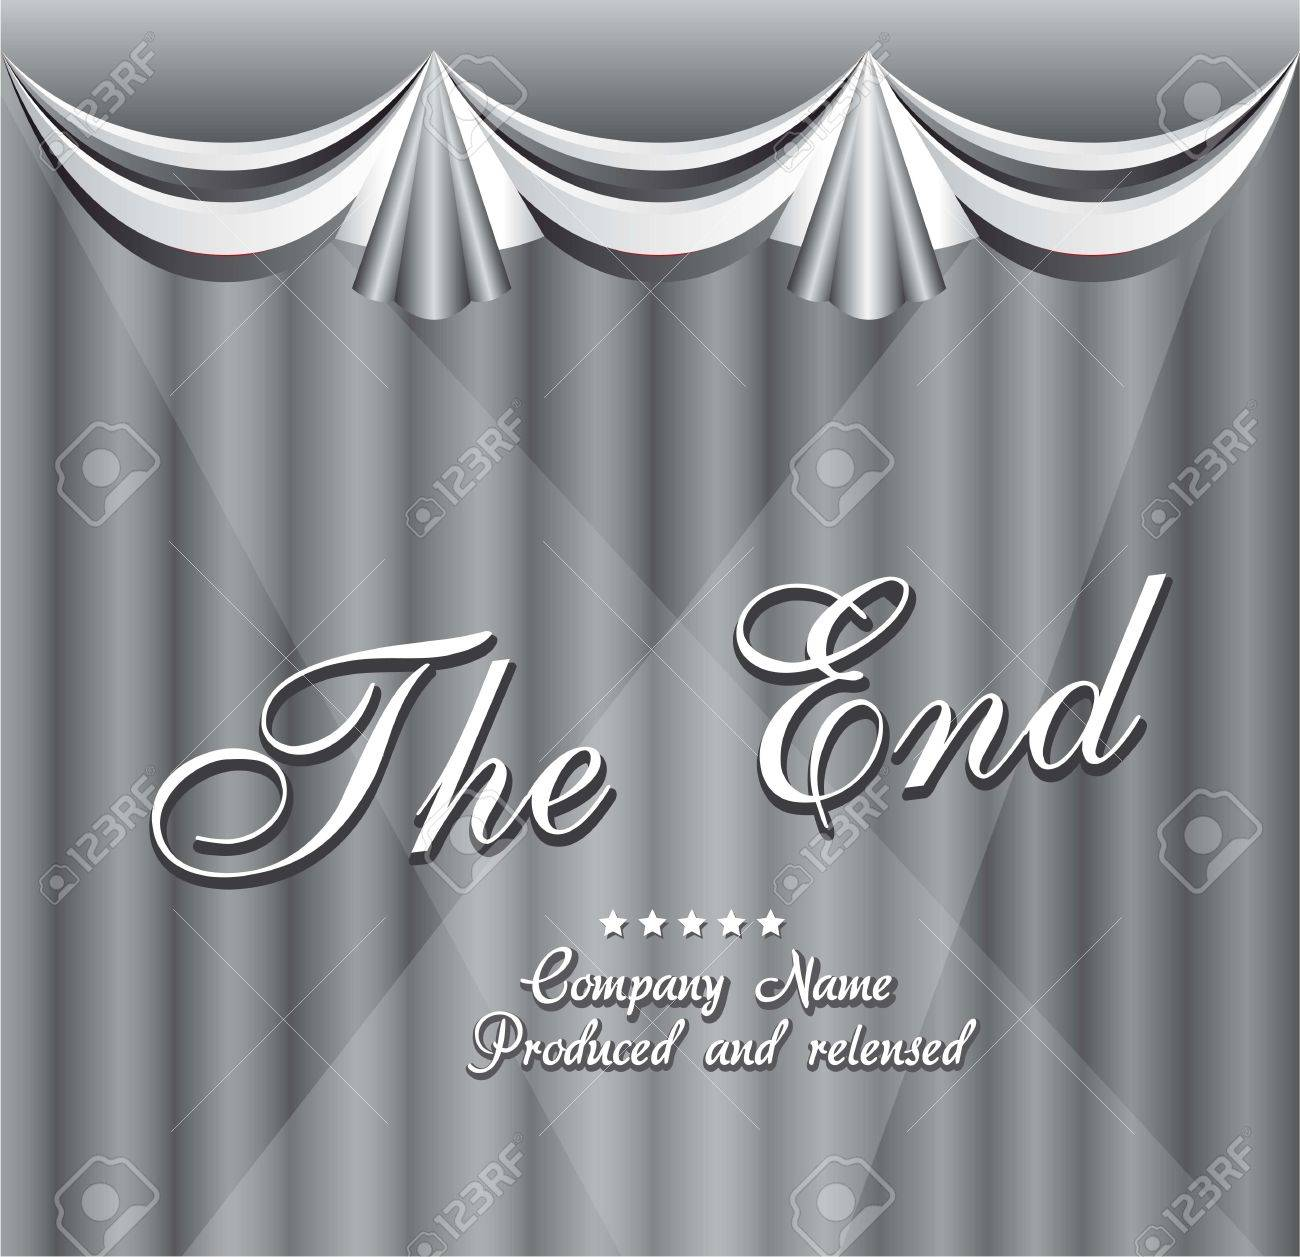 Movie ending screen with curtain. vector illustration Stock Vector - 14553103